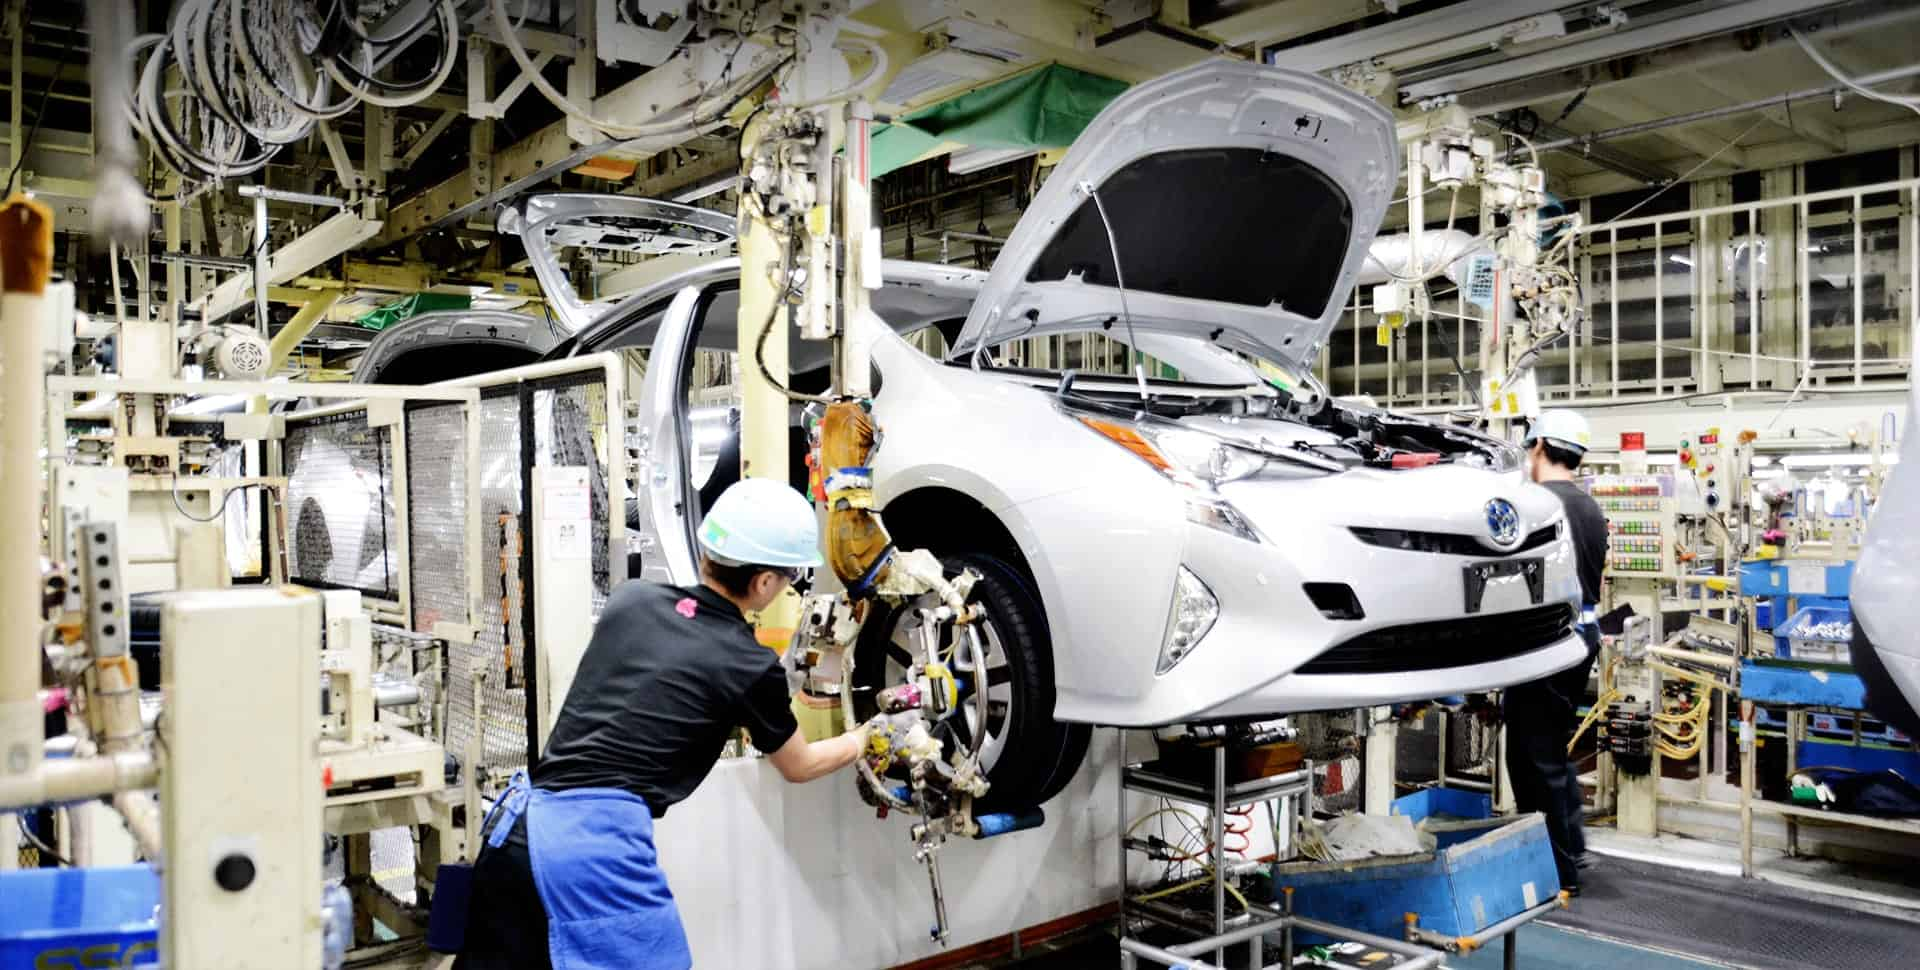 Final Assembly of a Toyota Car